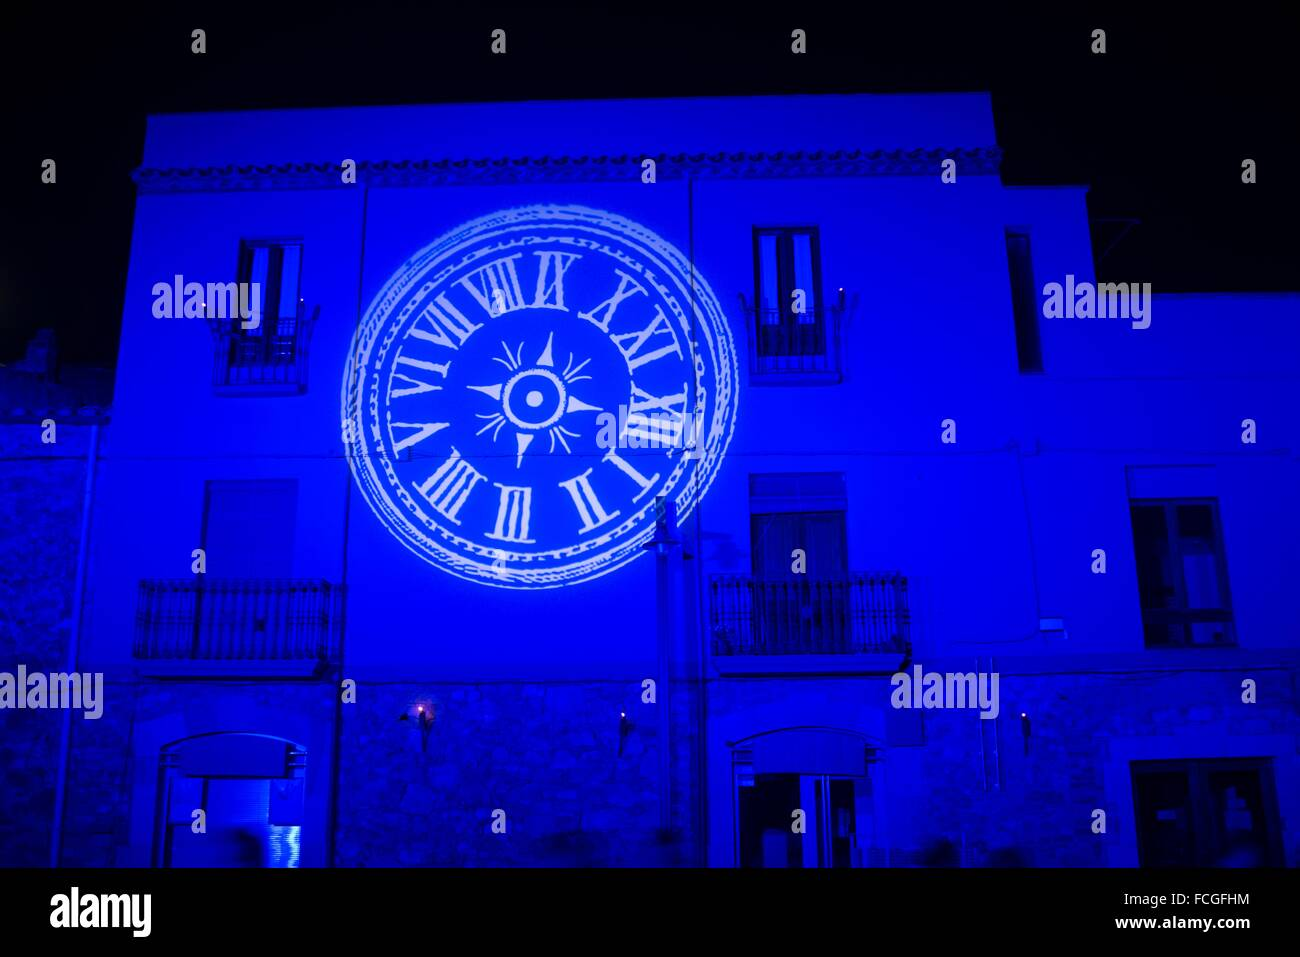 Light projection of a watchless clock over medieval city as part of the feast setup. - Stock Image